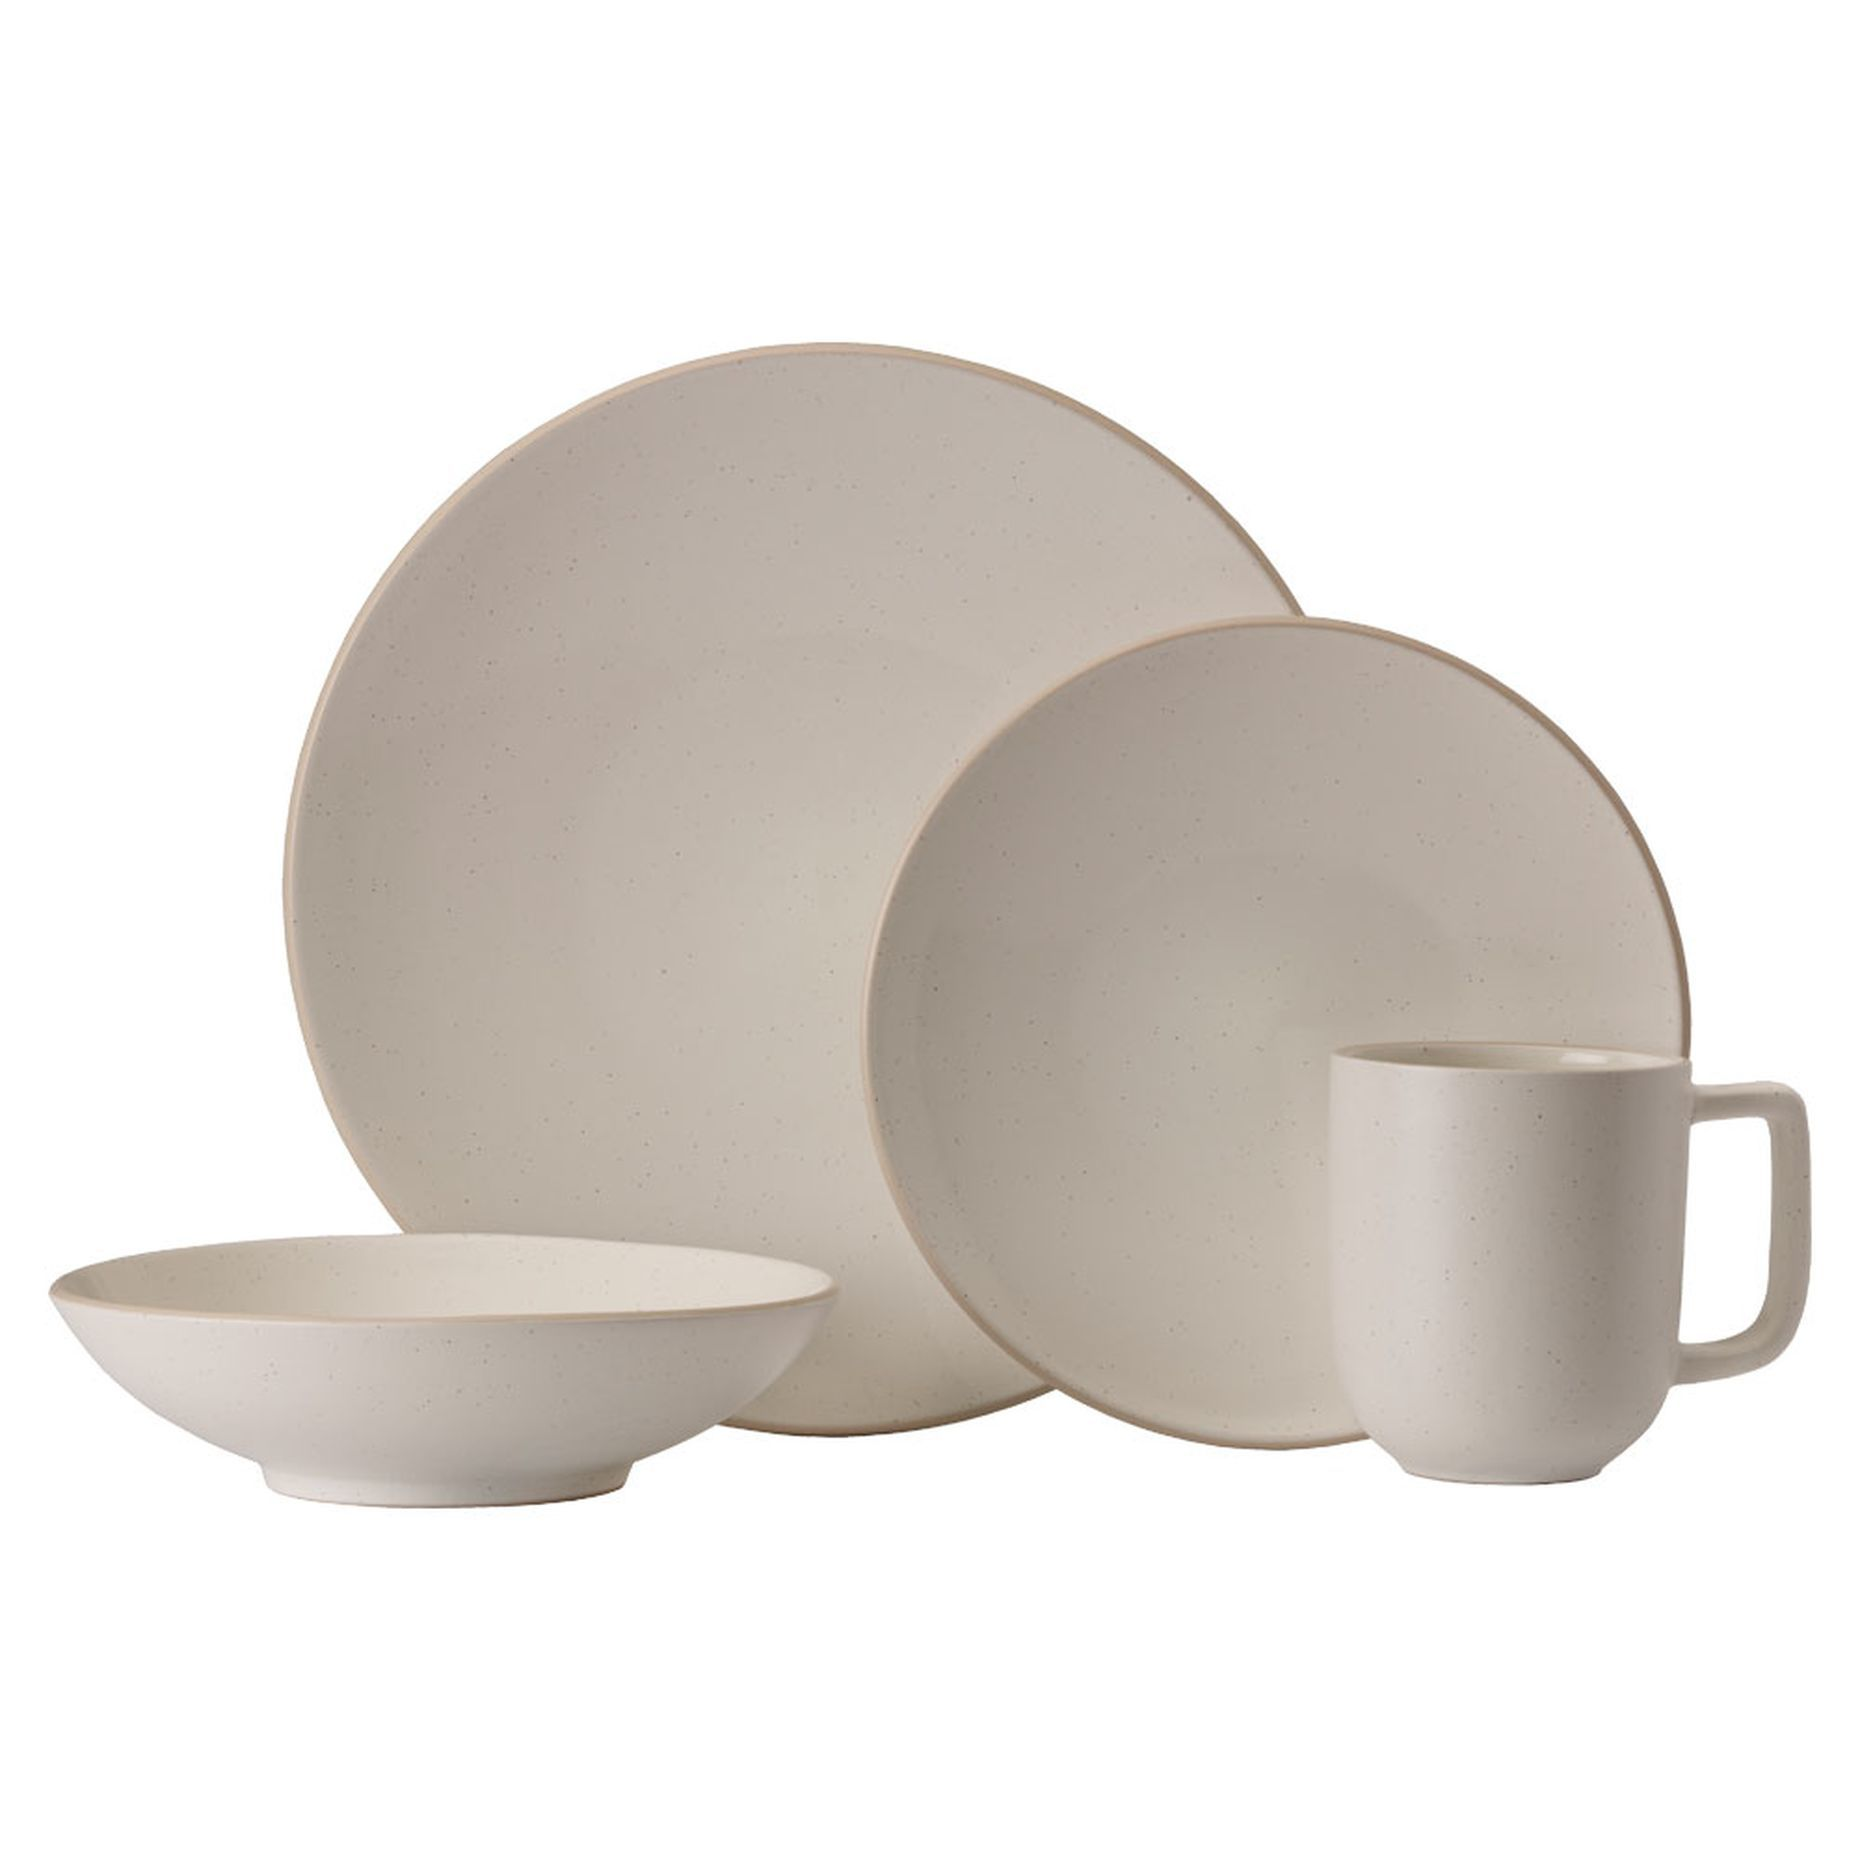 Set The Mood For Everything: 48 Piece Dinnerware Set $300 For 12 Place Settings